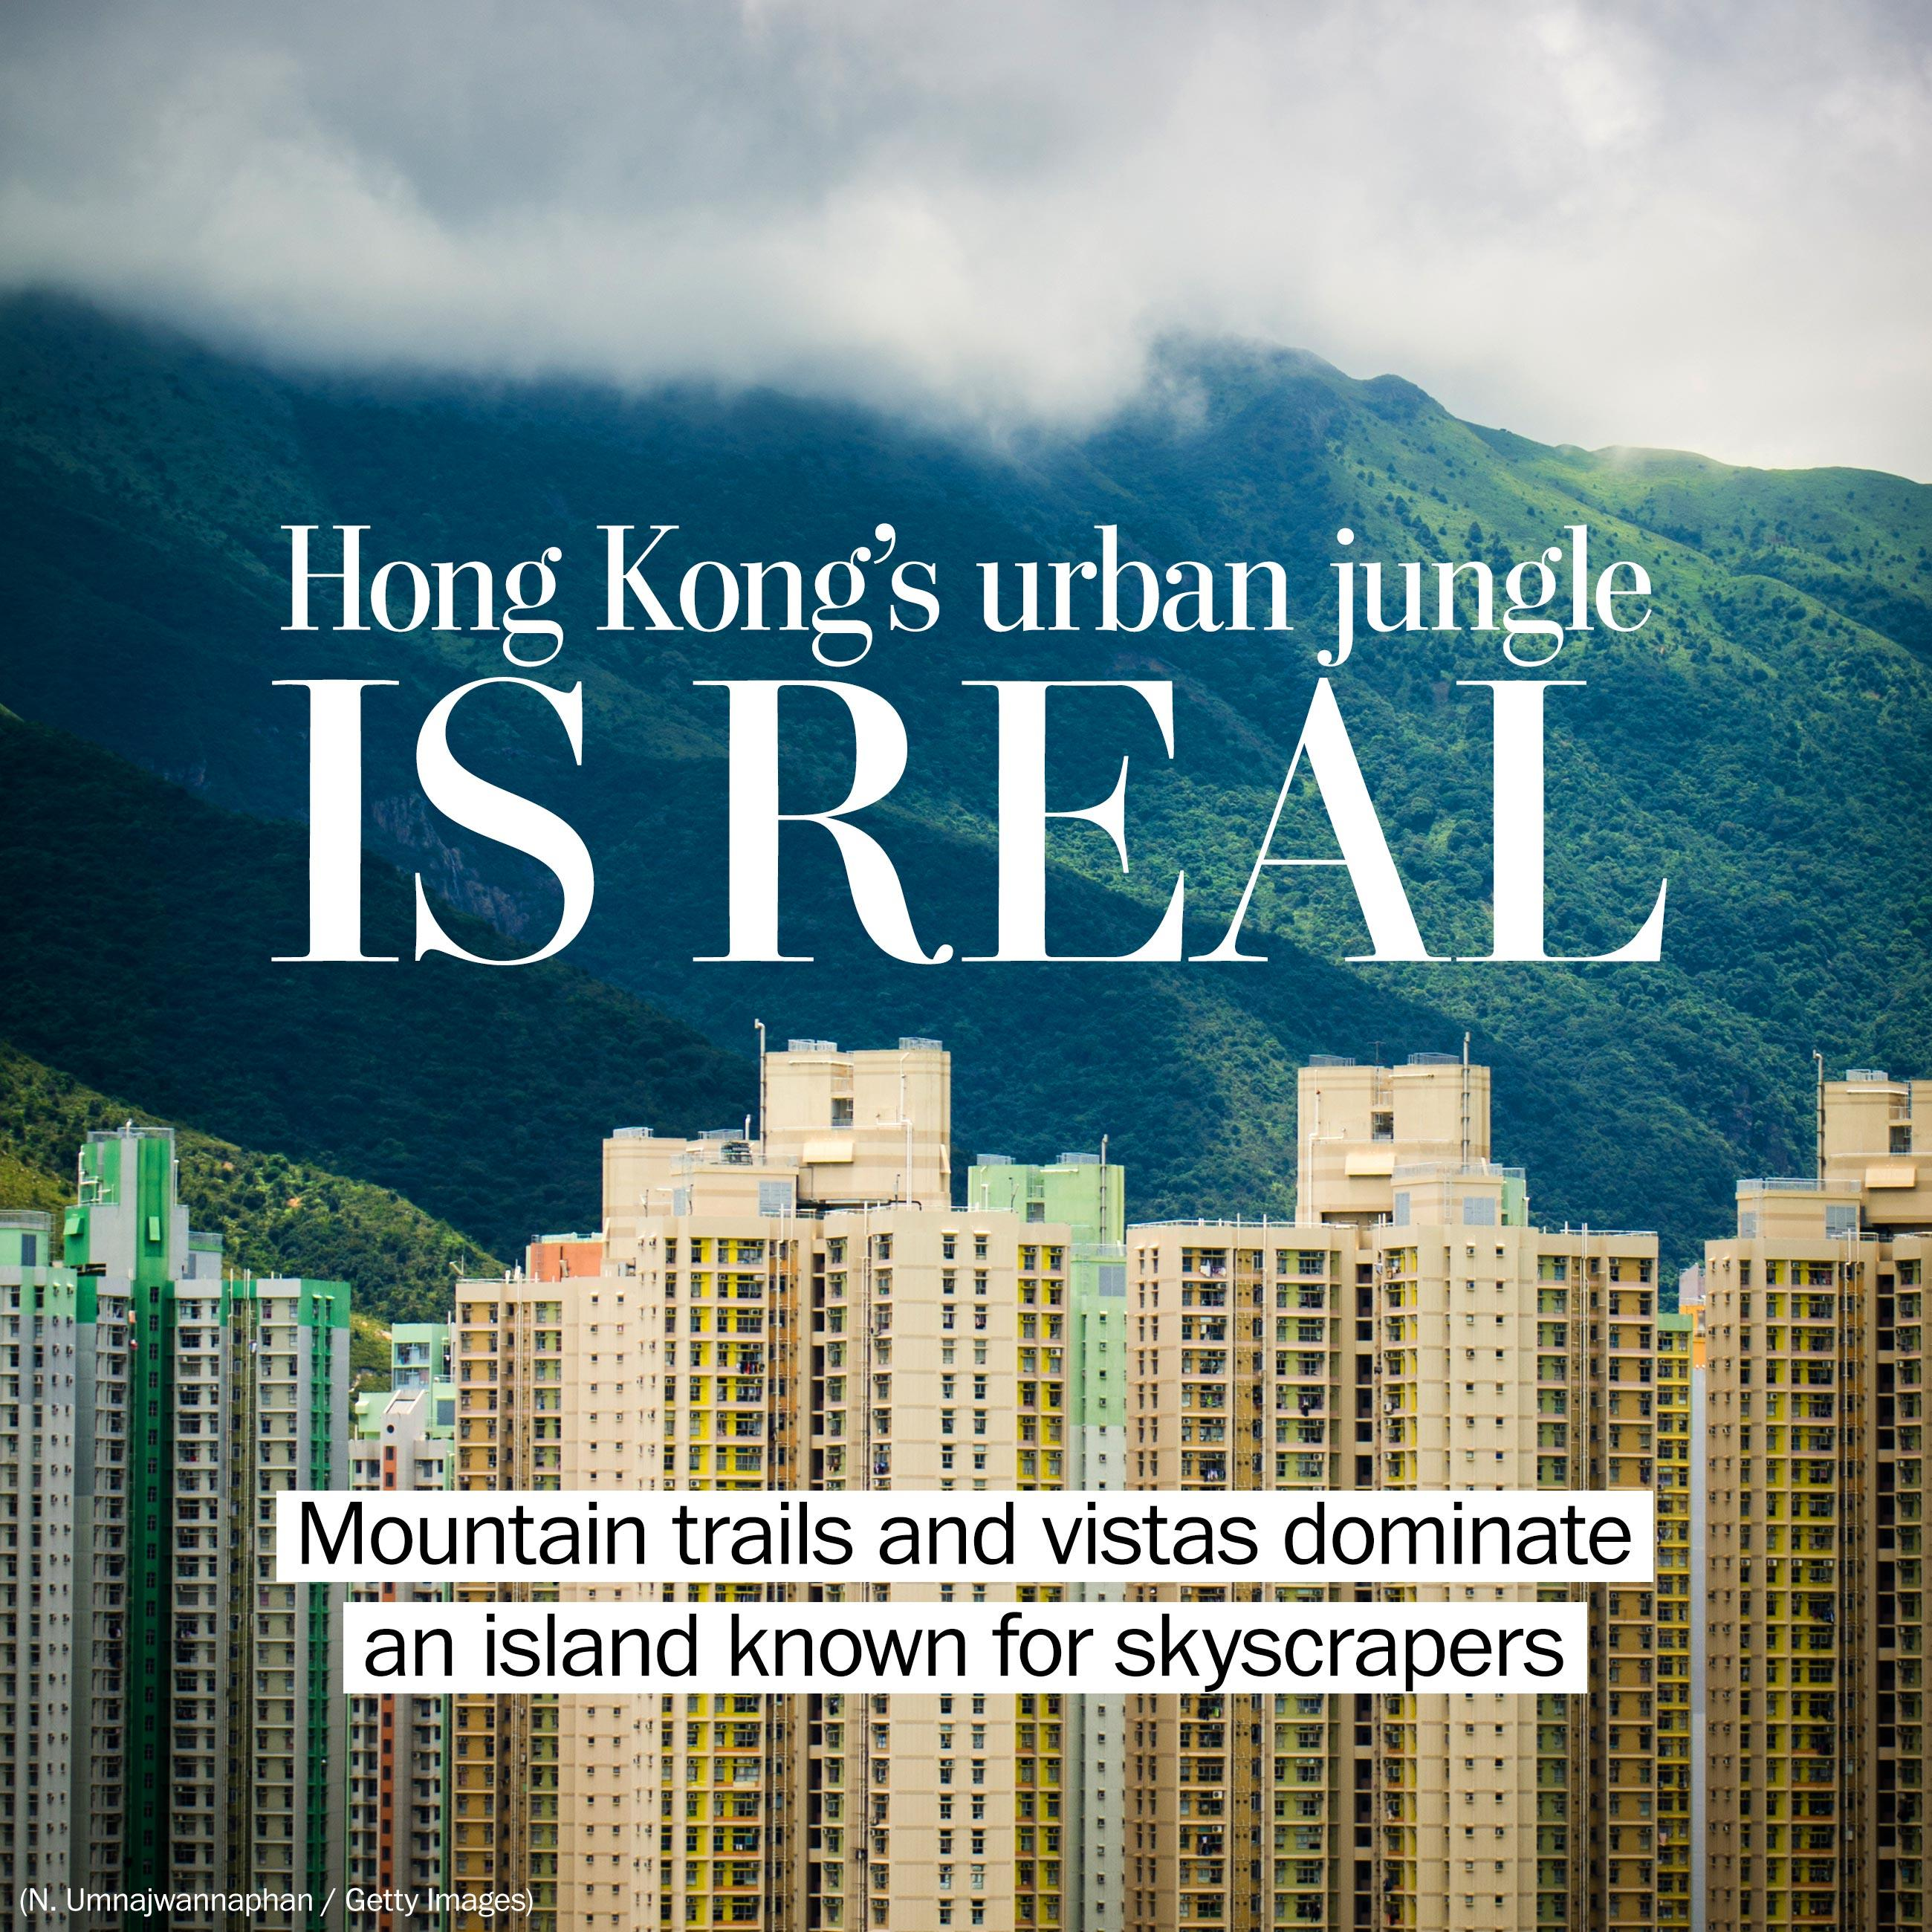 Hong Kong's urban jungle is real, not a metaphor for concrete and steel